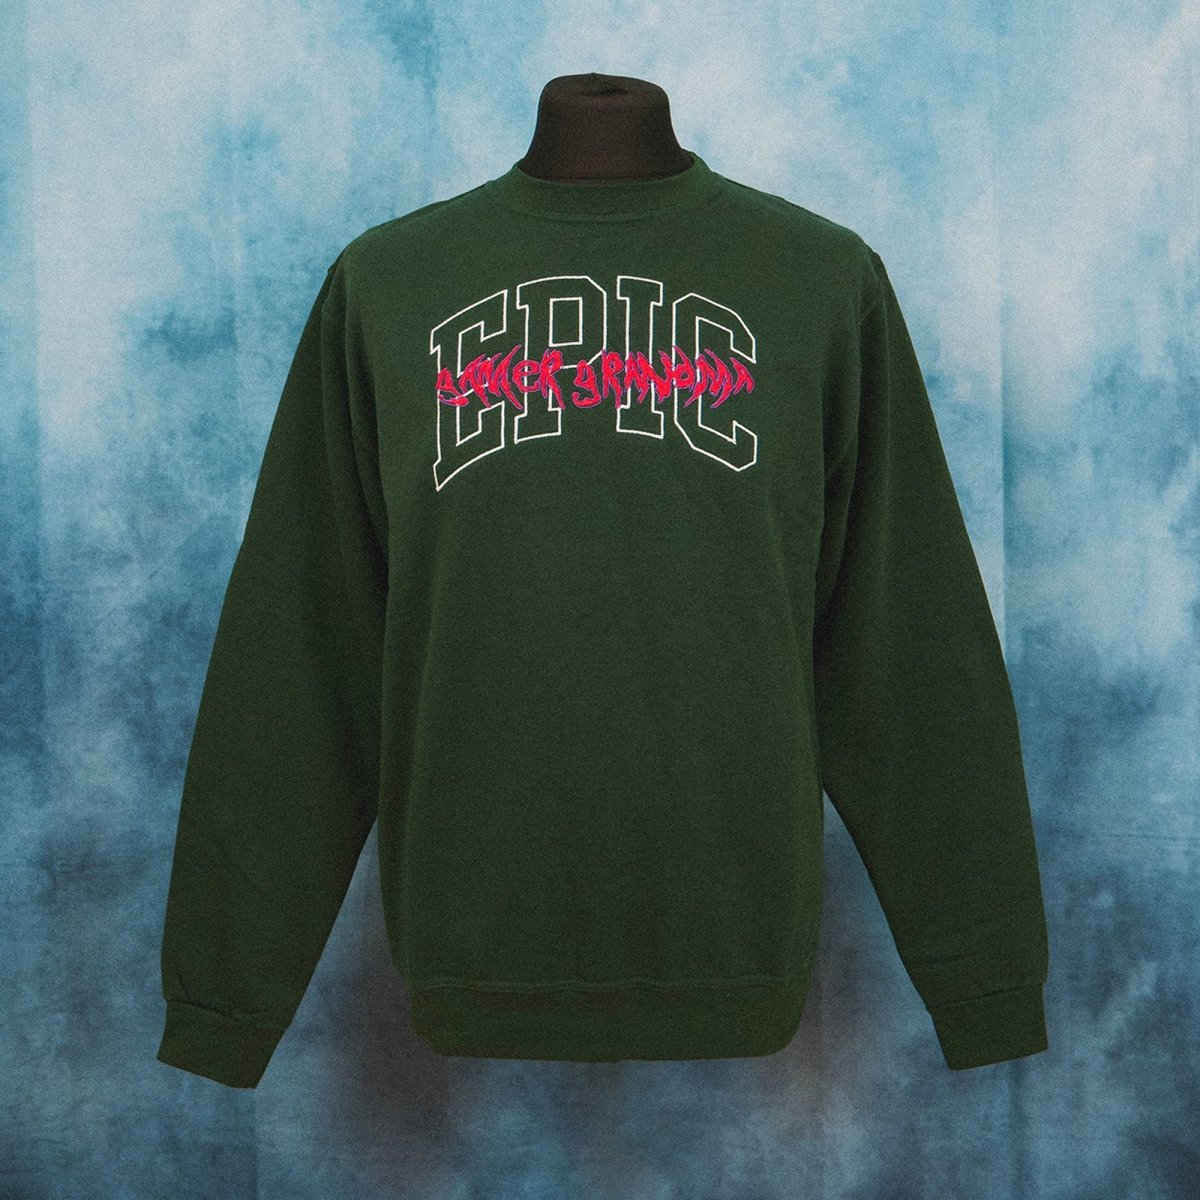 Epic Gamer Grandma - College Dark Green Unisex Embroidered Sweater - The Fresh Stuff